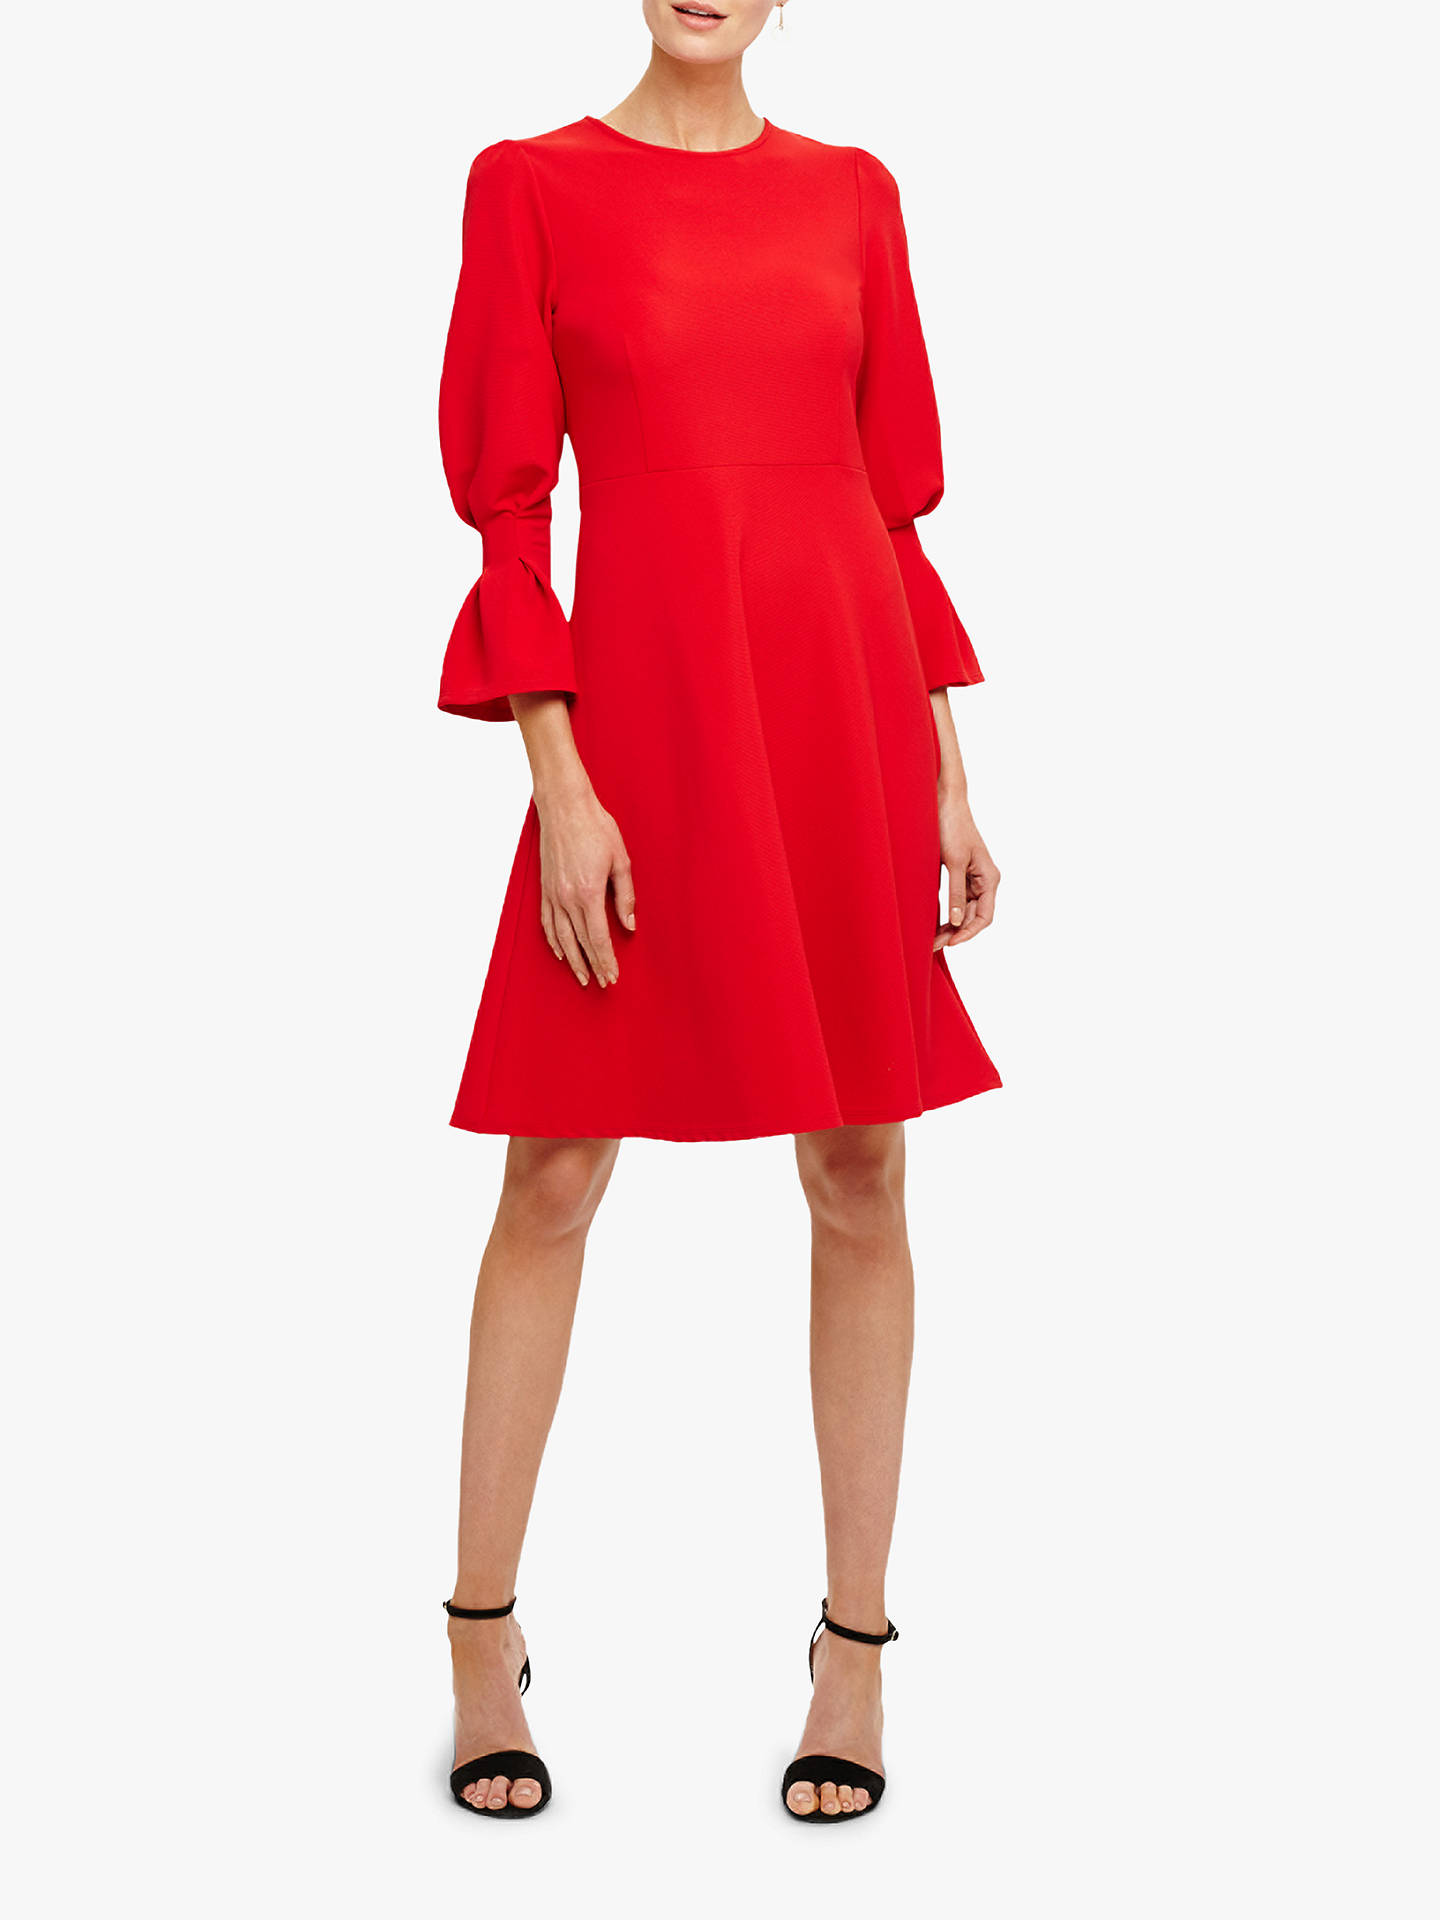 BuyPhase Eight Raya Ribbed Swing Dress, Salsa Red, 14 Online at johnlewis.com